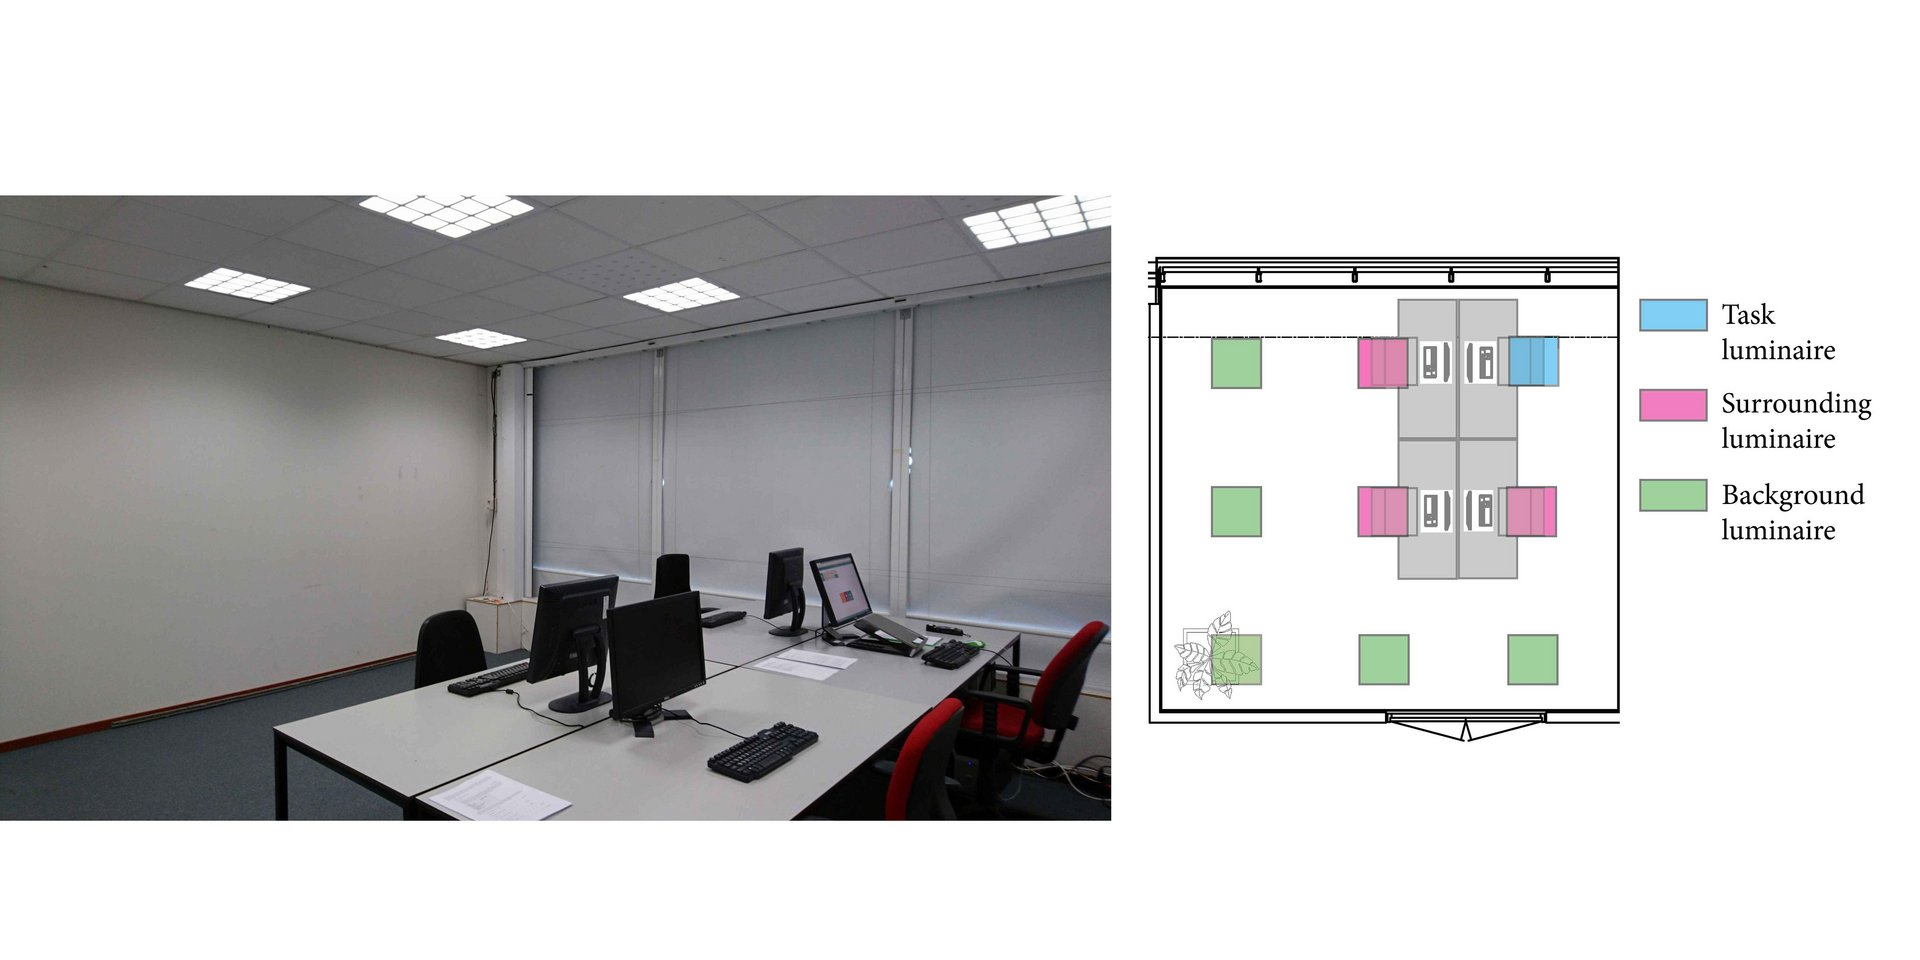 The research set-up for a medium-sized office. The subject sits at the desk with the lamp indicated in blue. For the best lighting strategy, the user's desk is the most brightly lit. The three surrounding desks (pink) are slightly dimmed, while the lamps in the area (green) are dimmed the most. Photos: Christel de Bakker.